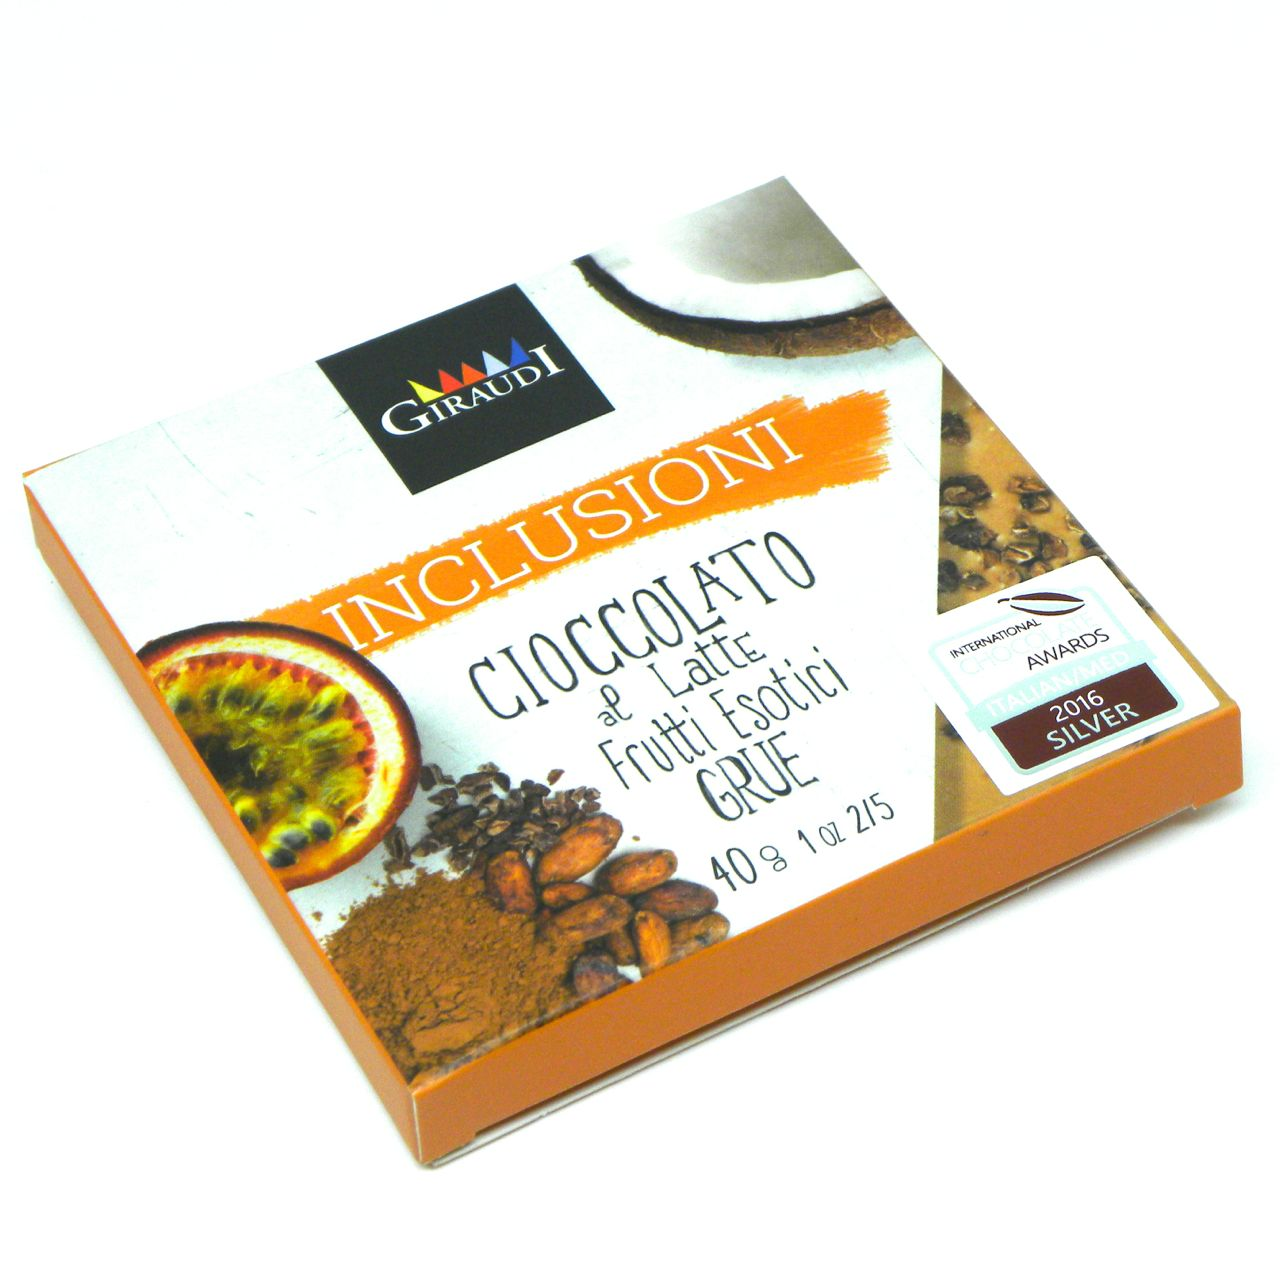 Inclusioni Giraudi Latte Frutti esotici Grue – Giraudi Inclusioni milk chocolate exotic fruits grue – Gustorotondo – Italian food boutique